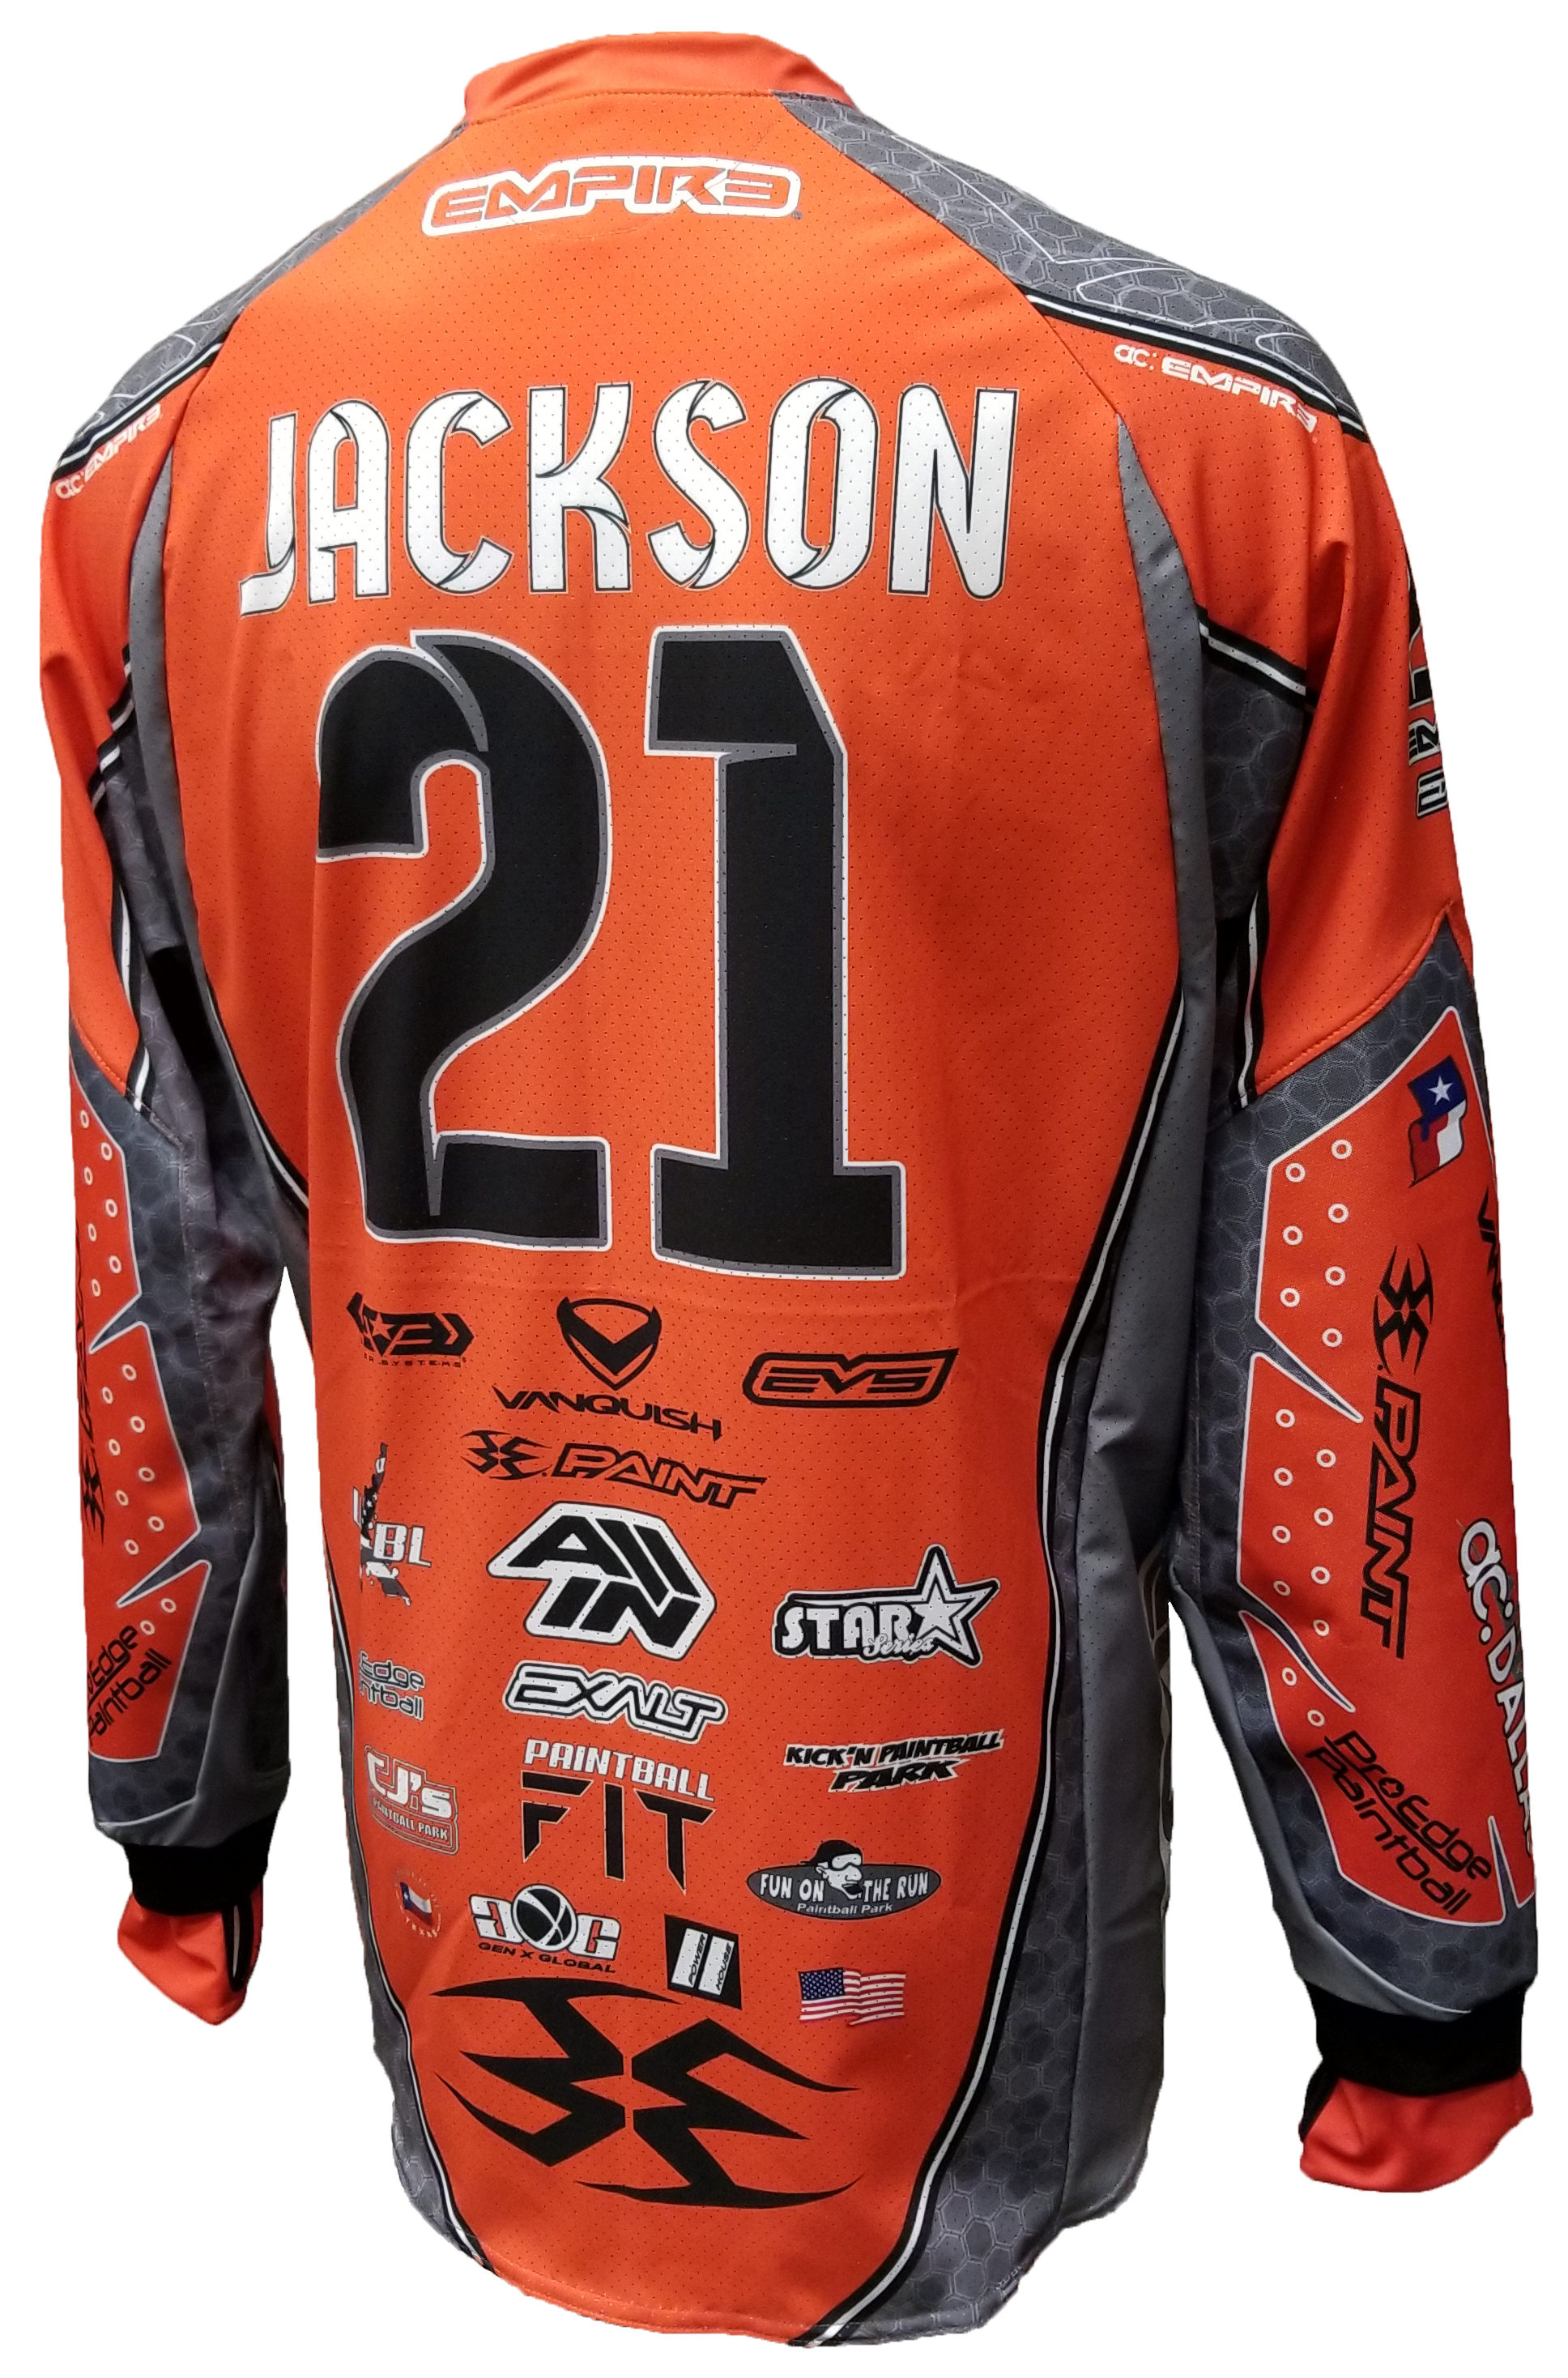 ac Dallas 2018 Away (Orange) Jersey - RazaLife -  - RazaLife - RazaLife - paintball - custom - jerseys - sports - uniforms - woodsball - softball - baseball - basketball - soccer